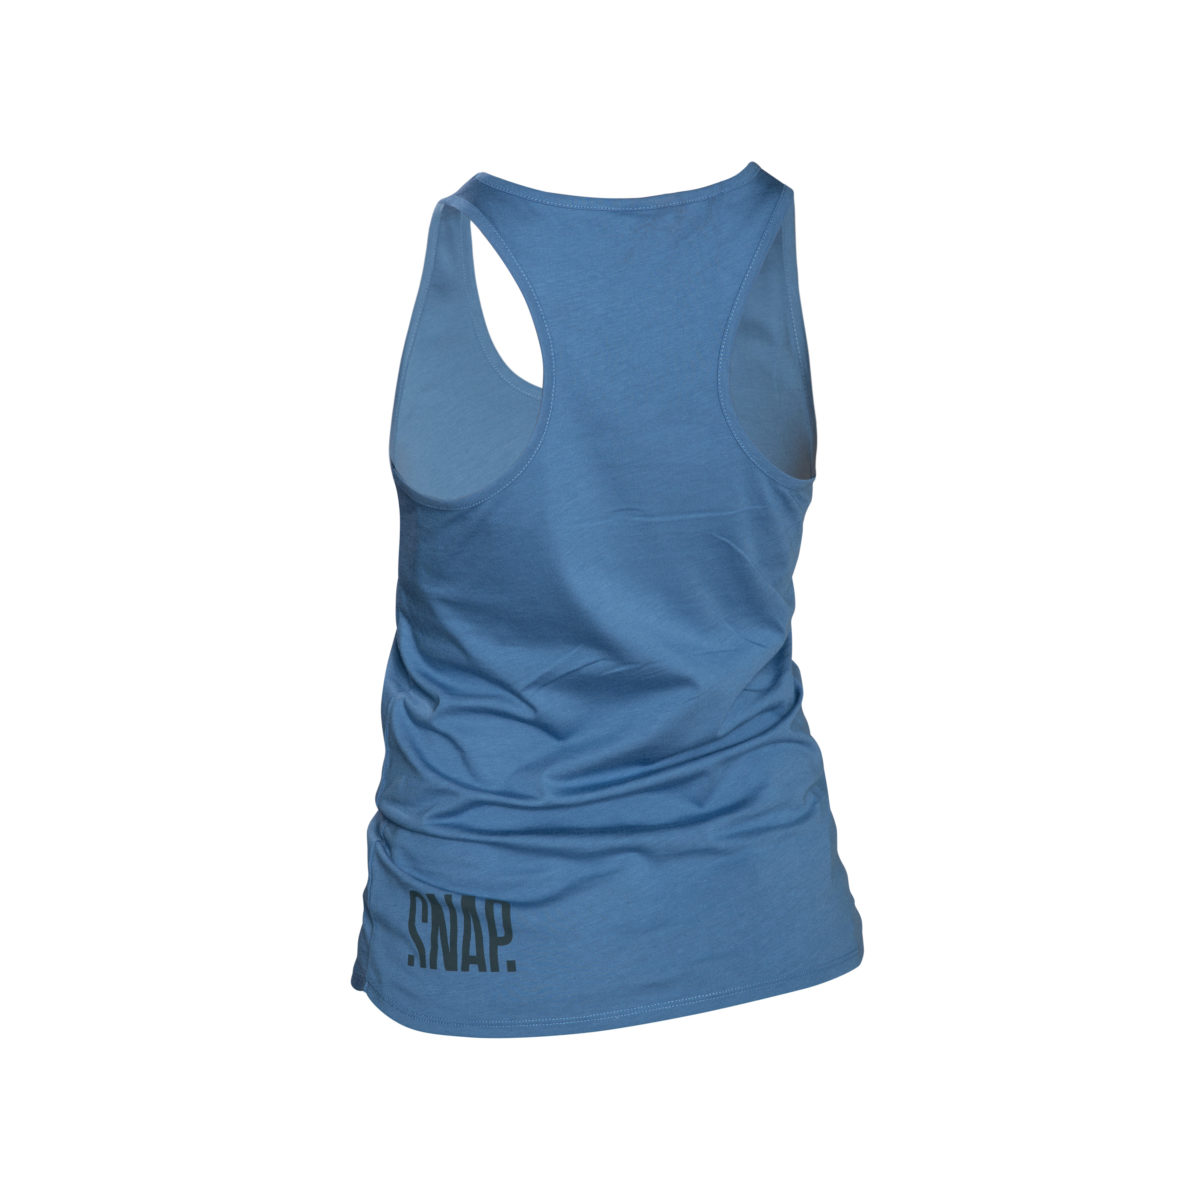 organic cotton blue tank top